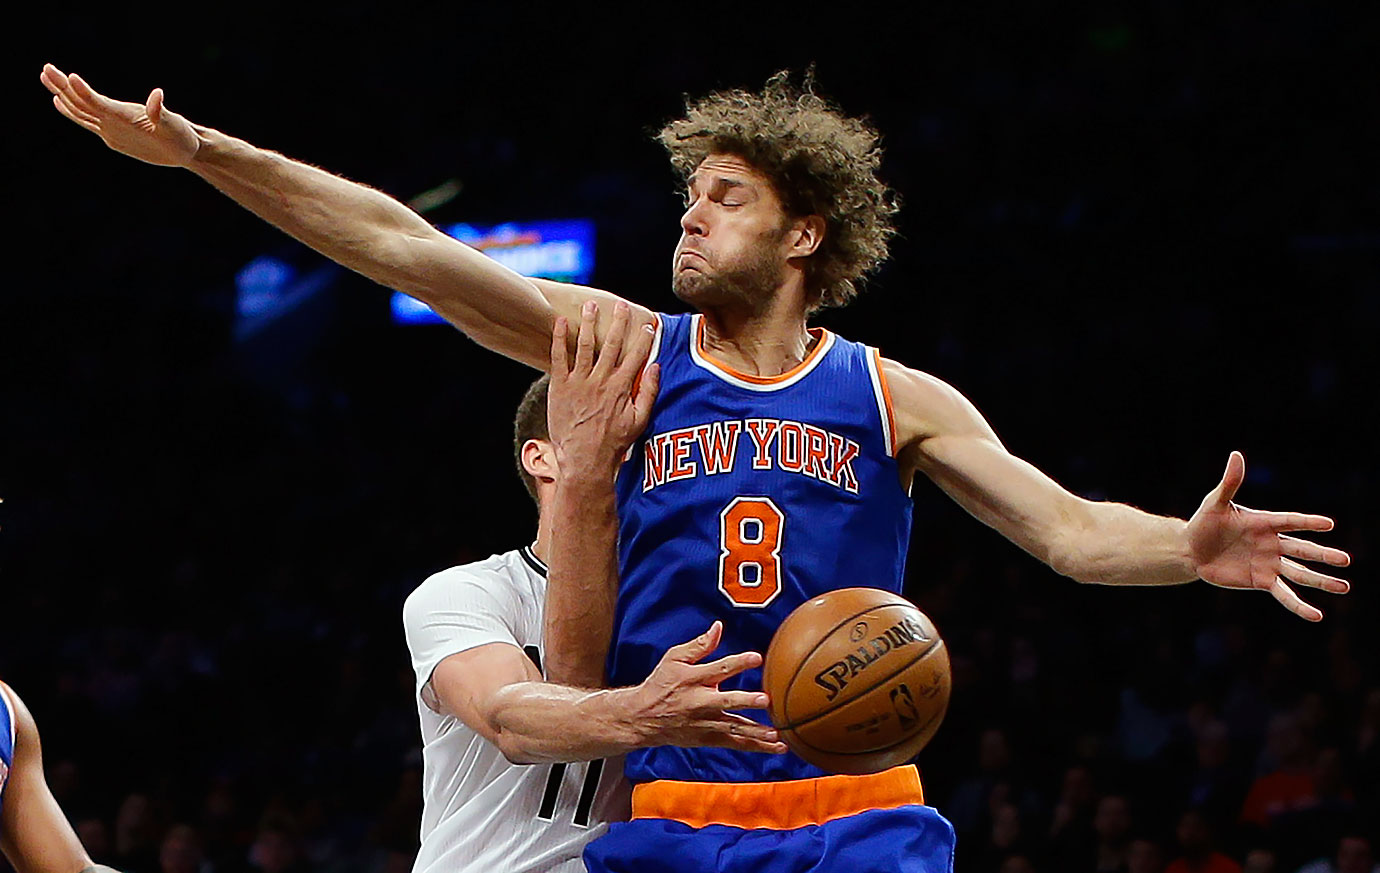 Brooklyn Nets center Brook Lopez passes off the ball around his brother, New York Knicks center Robin Lopez, during the fourth quarter of their game in New York City.